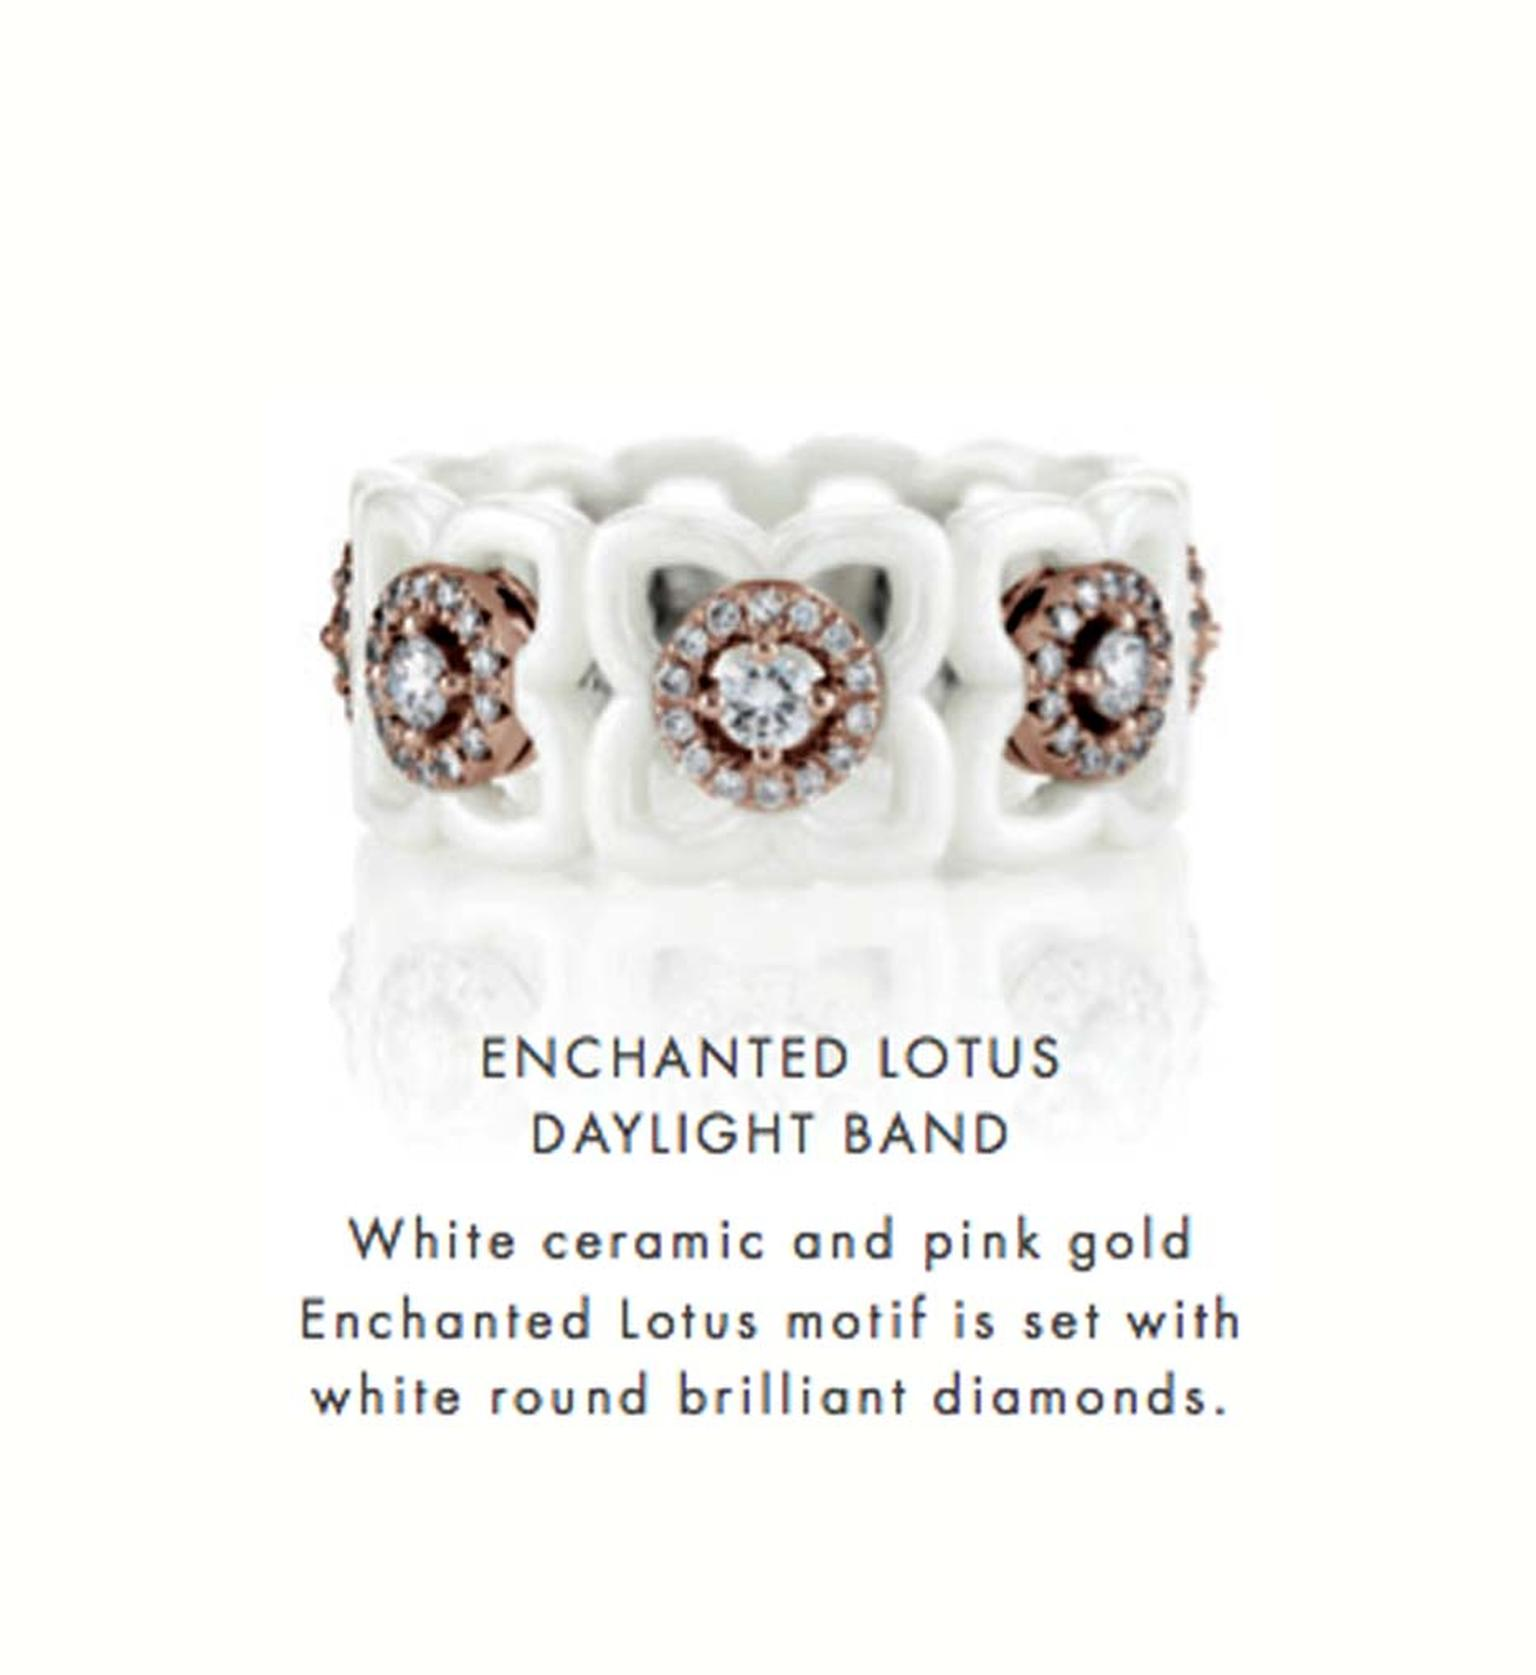 De Beers Enchanted Lotus Daylight ring featuring white ceramic and pink gold and round diamonds.